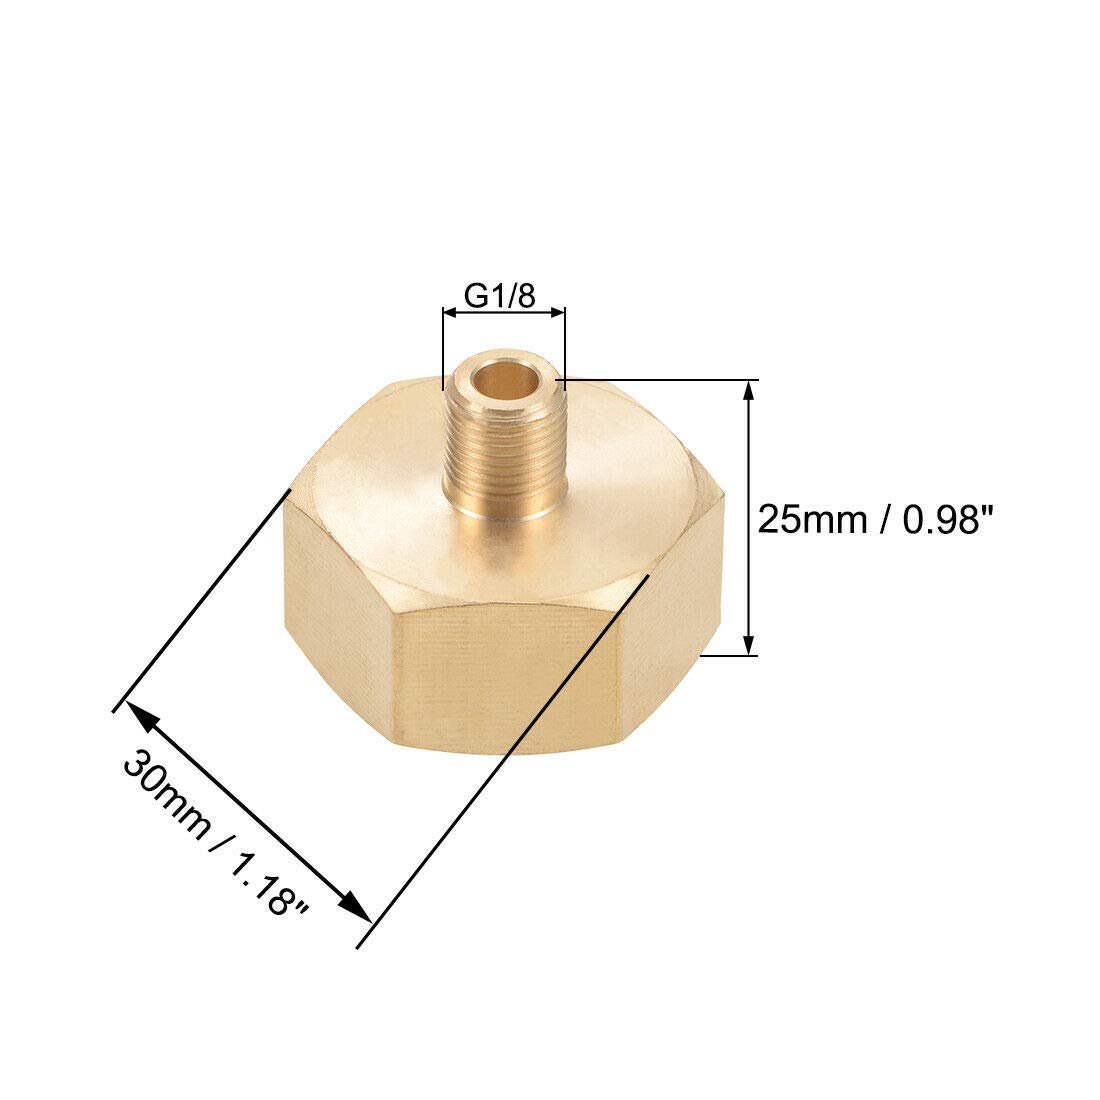 Pipe Fittings Pipe Fitting G1//8 Male x G3//4 Female Hex Bushing Adapter 25mm Length